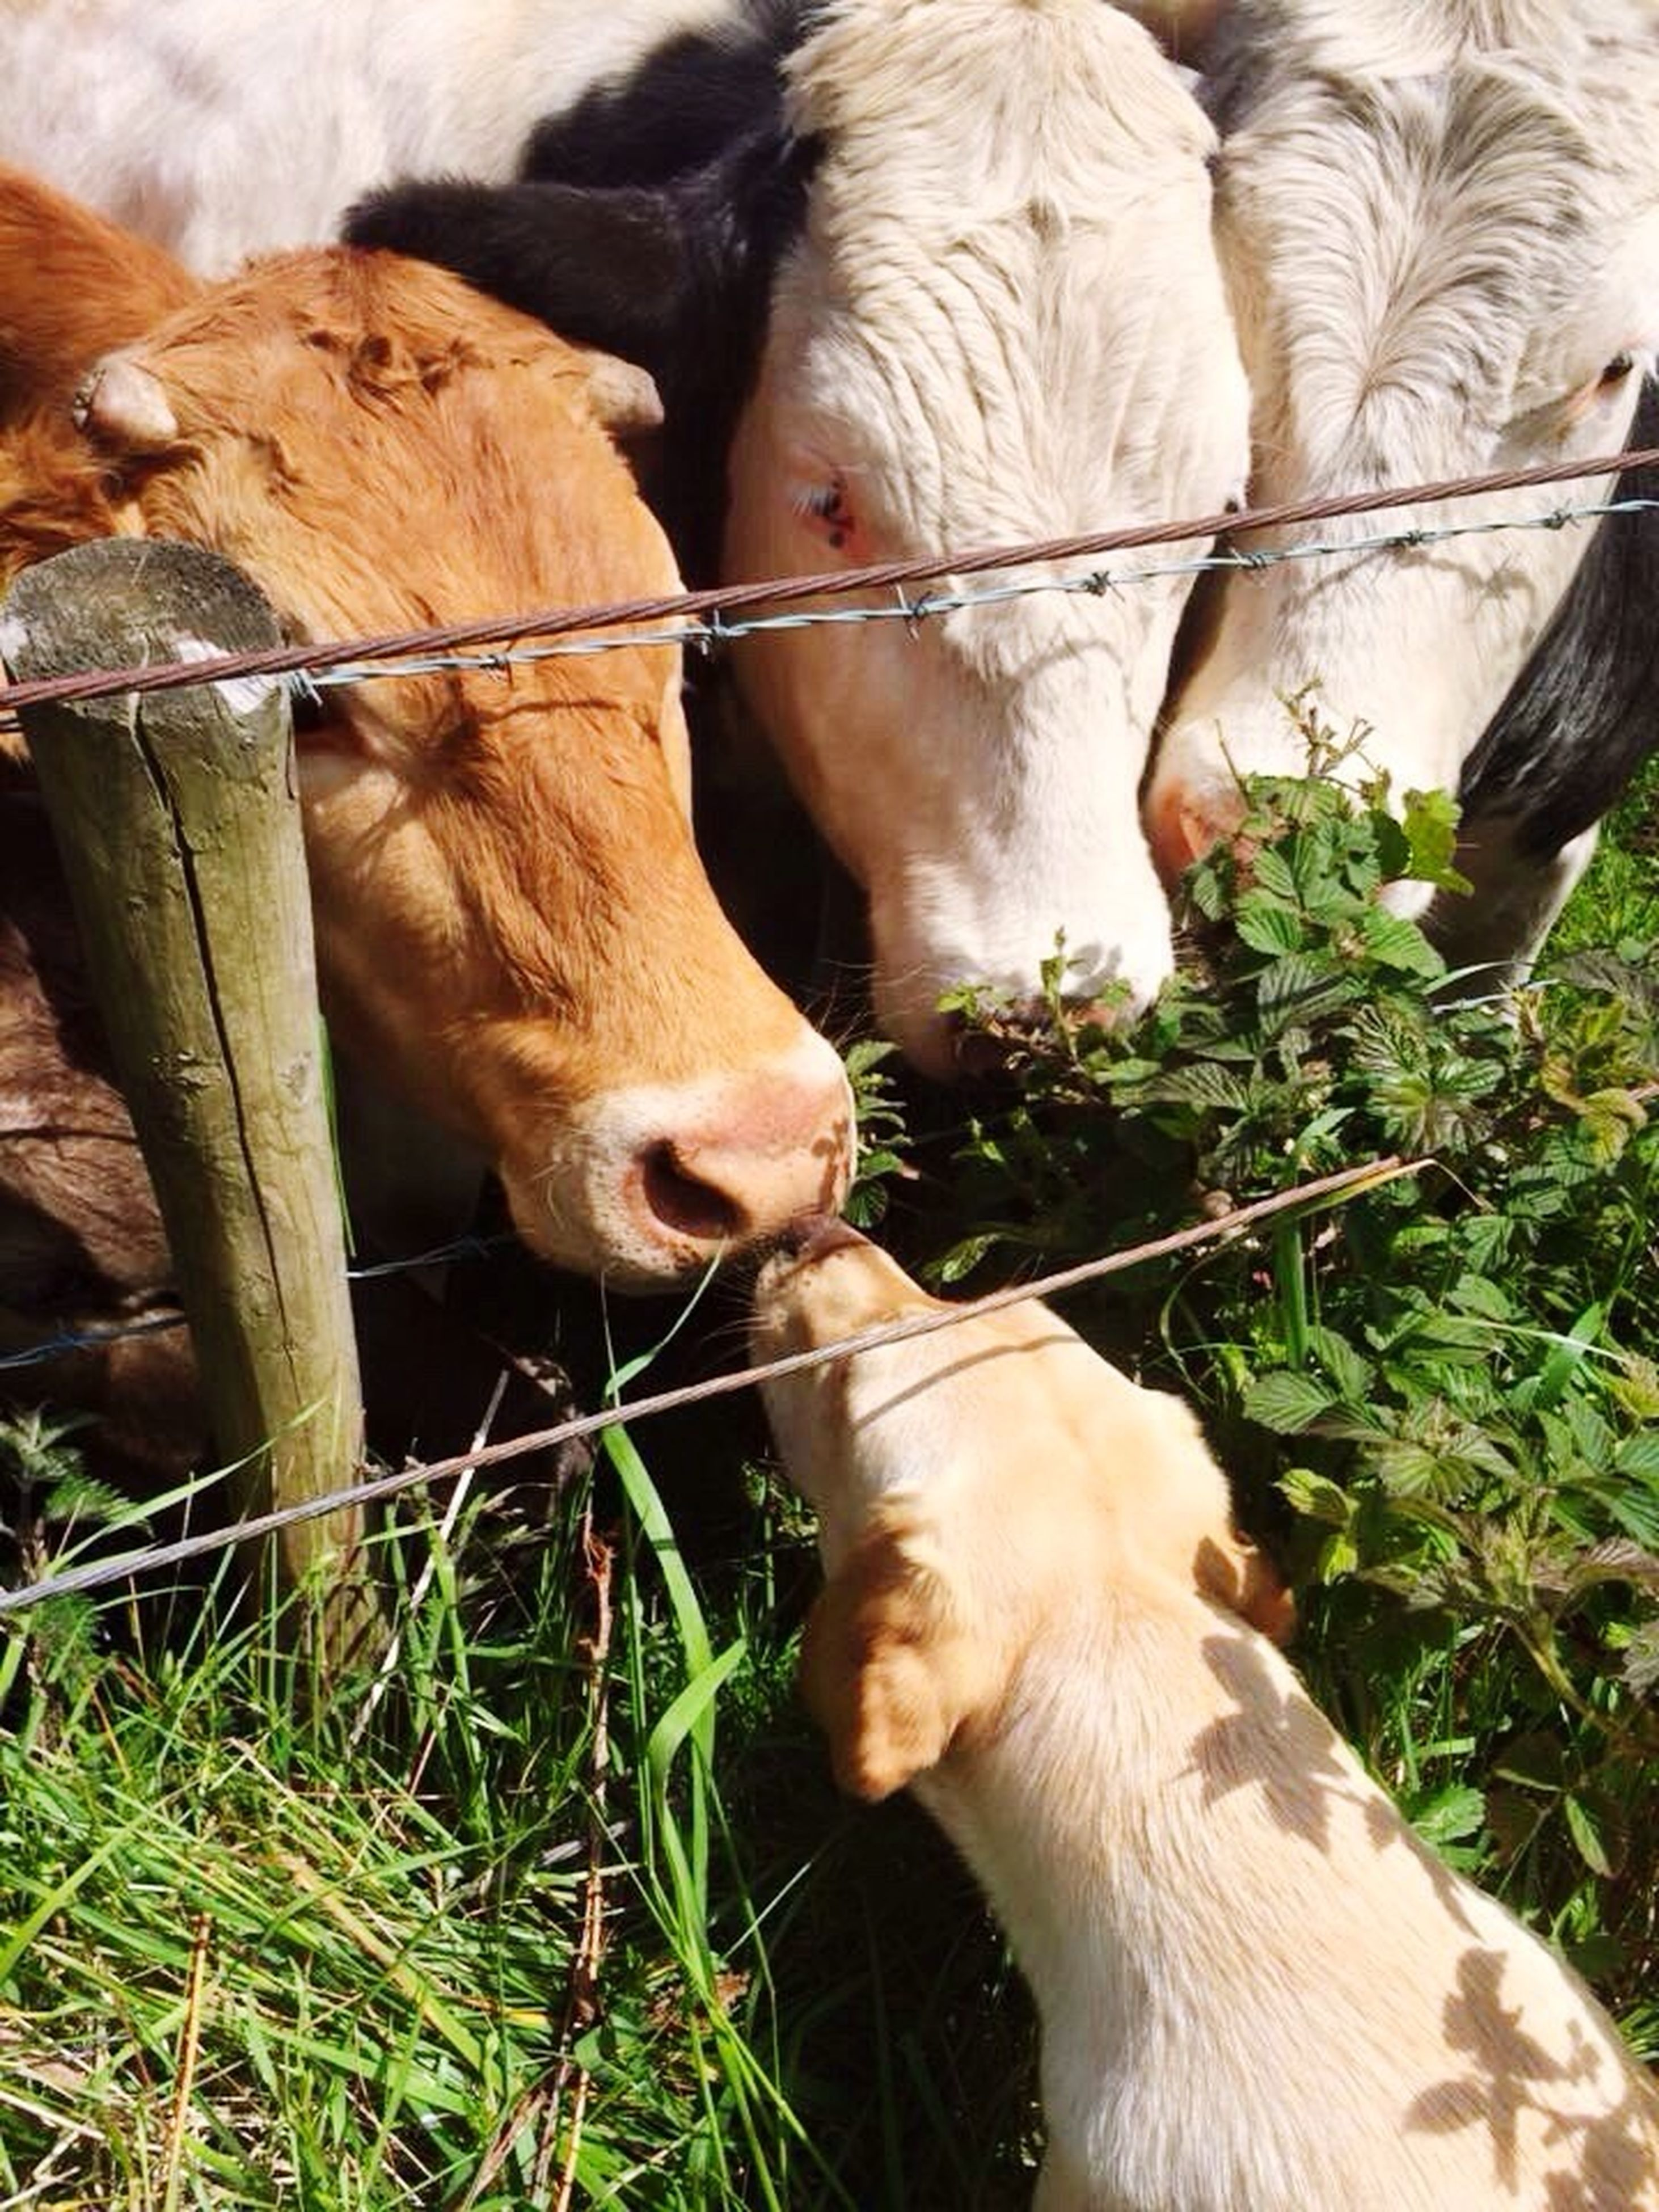 animal themes, domestic animals, mammal, livestock, grass, two animals, field, herbivorous, domestic cattle, fence, standing, cow, zoology, young animal, one animal, togetherness, cattle, animal pen, nature, goat